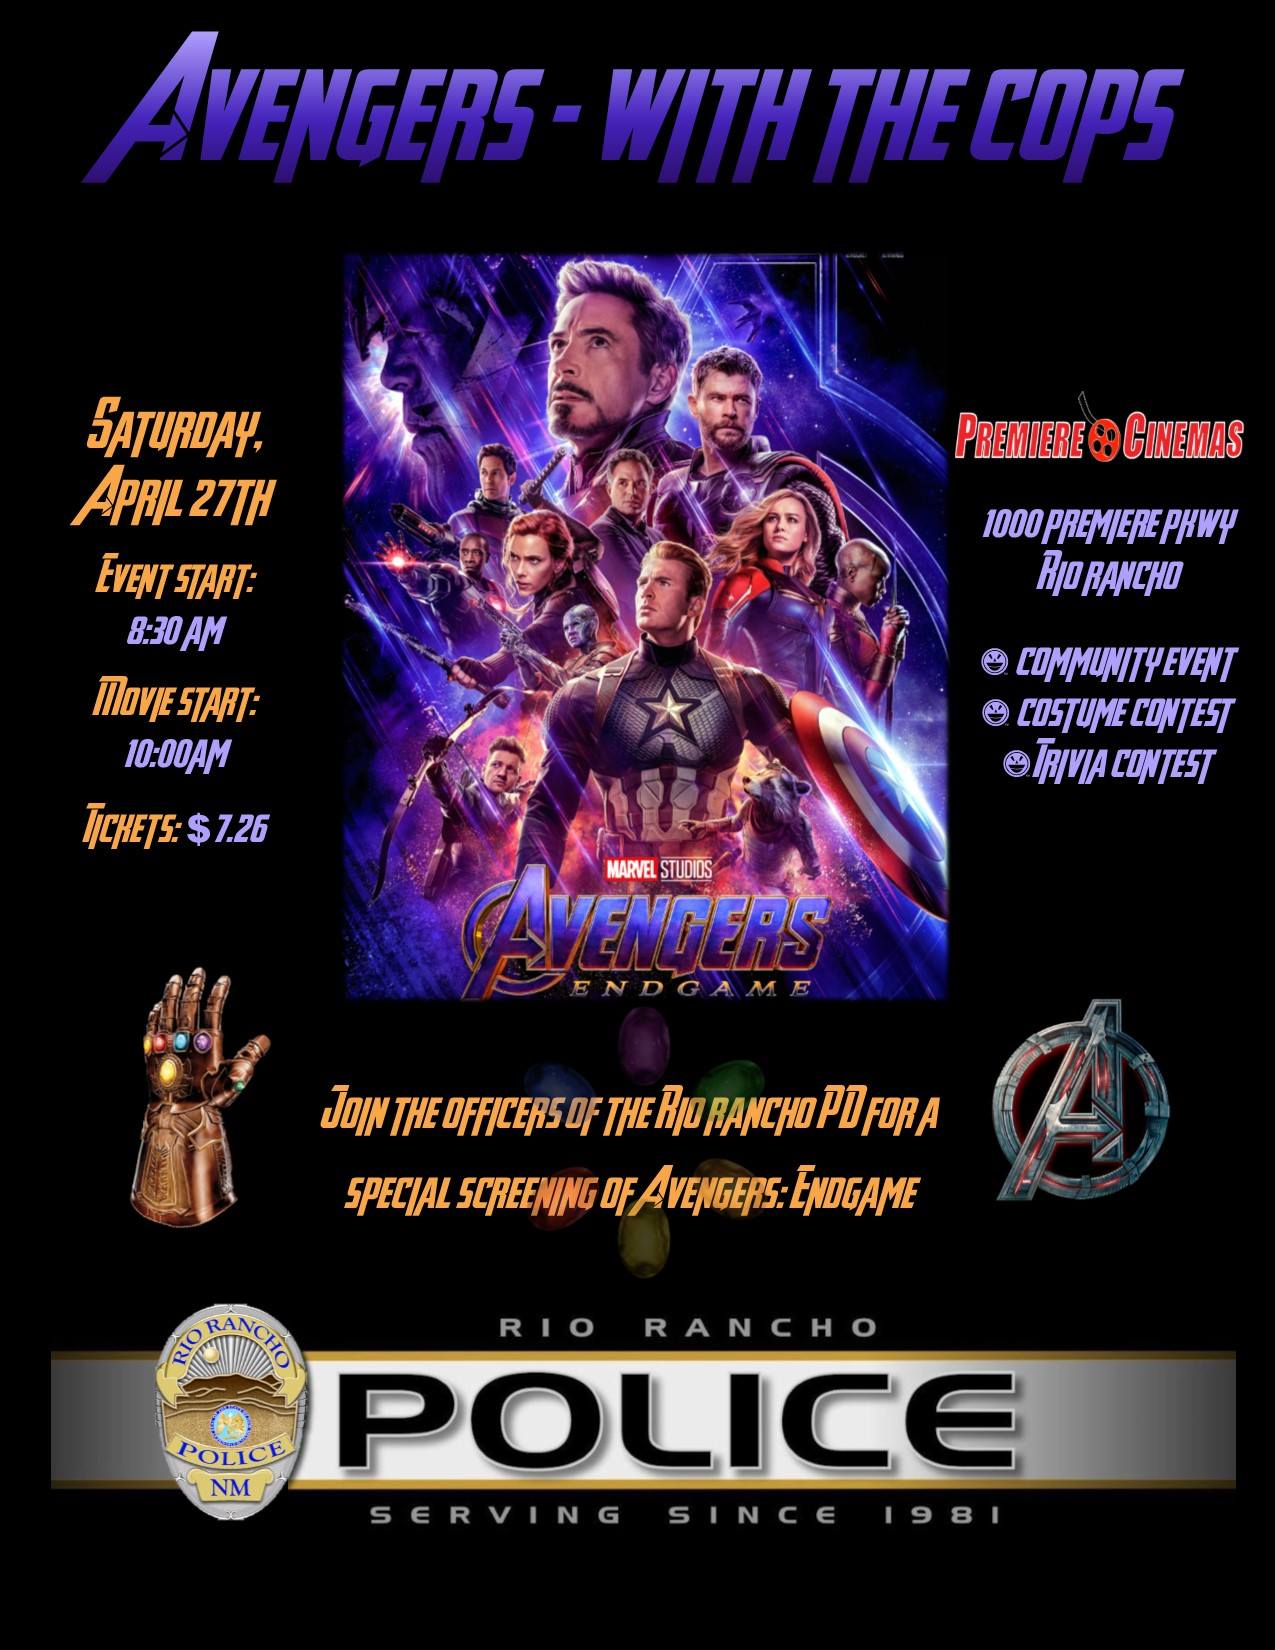 Avengers with the Cops